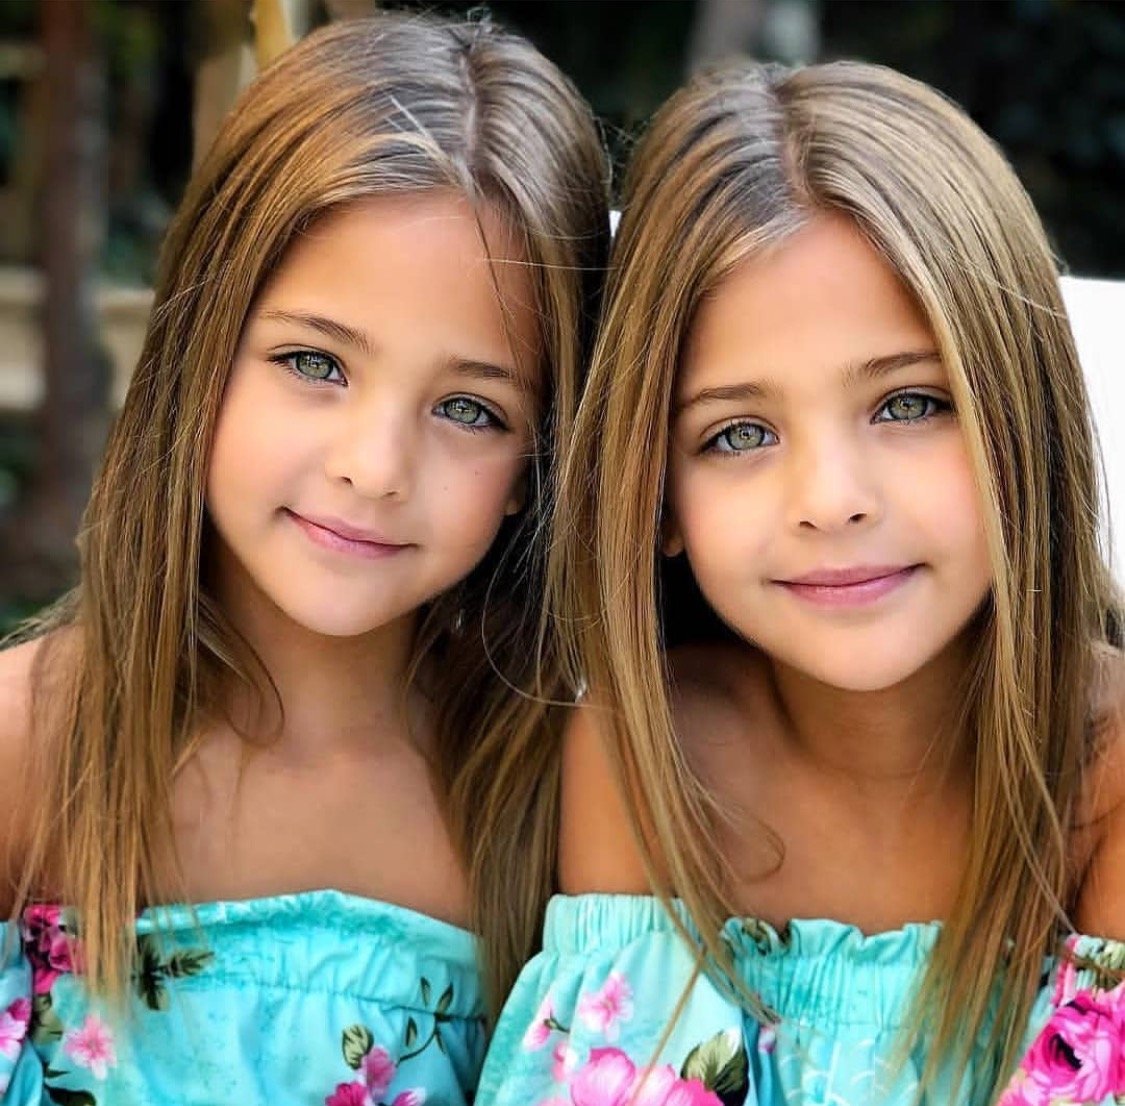 most beautiful twins in the world - 868×868